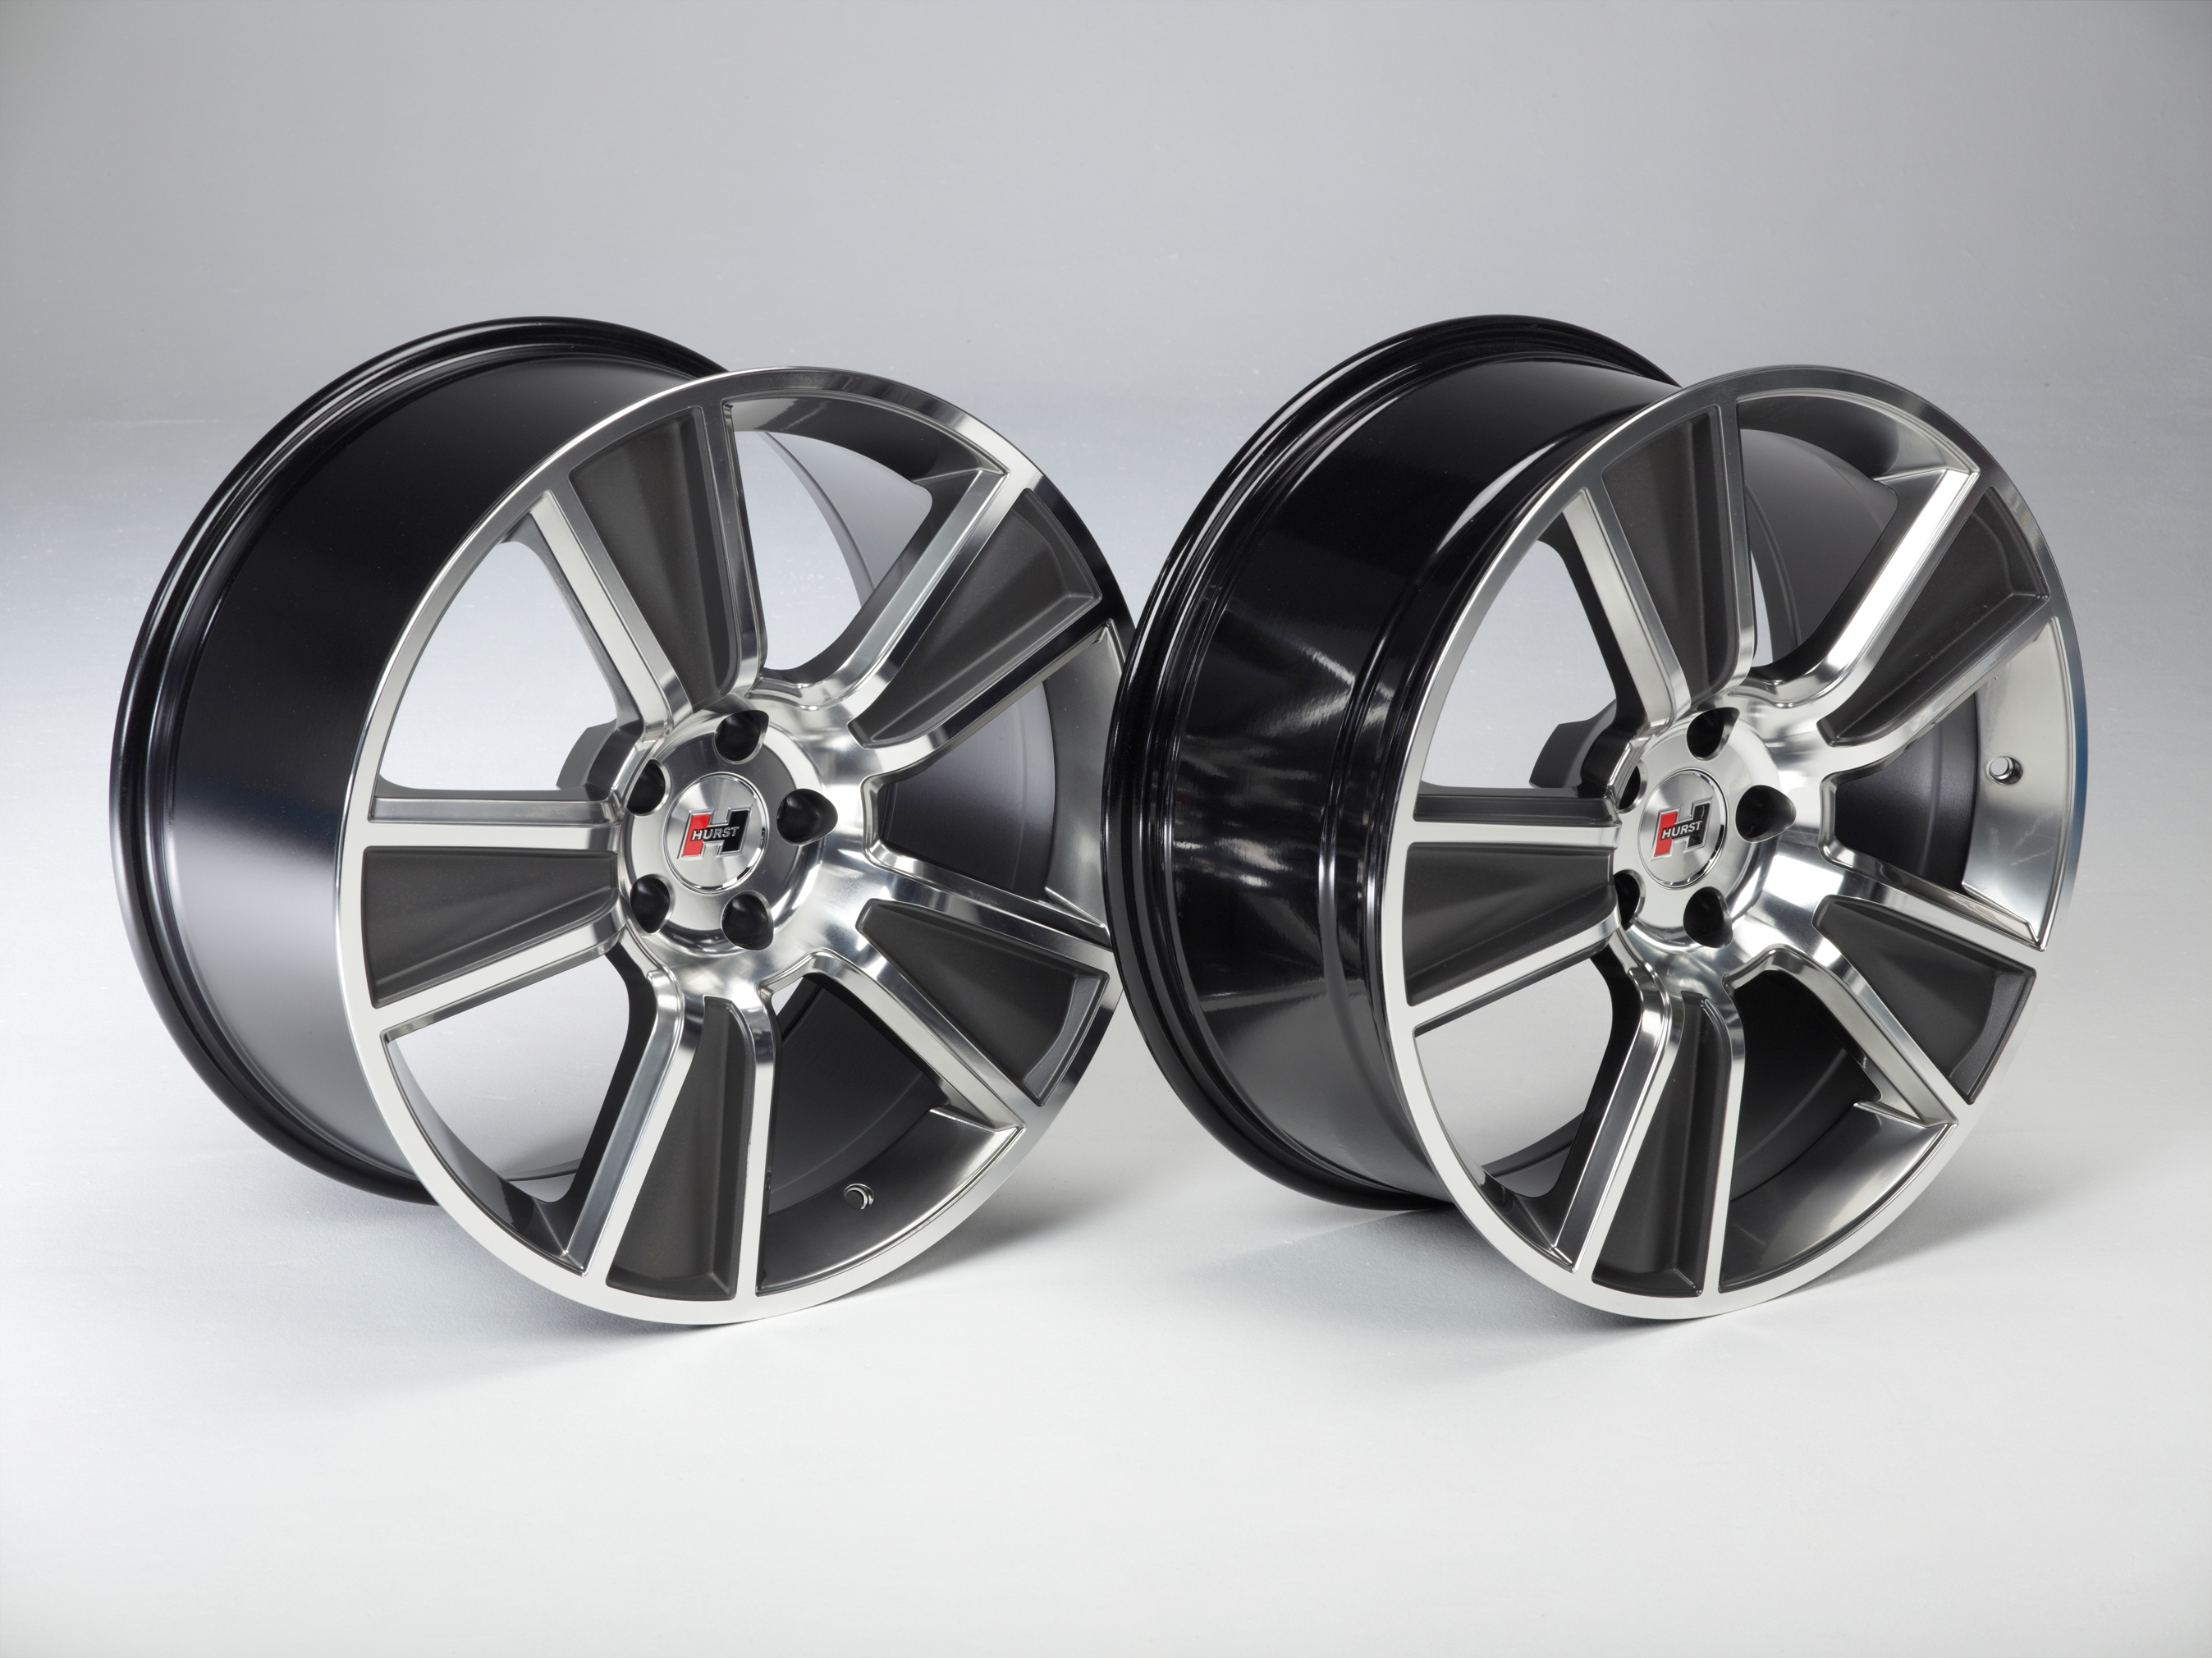 hurst t1 wheels now available for dodge challenger